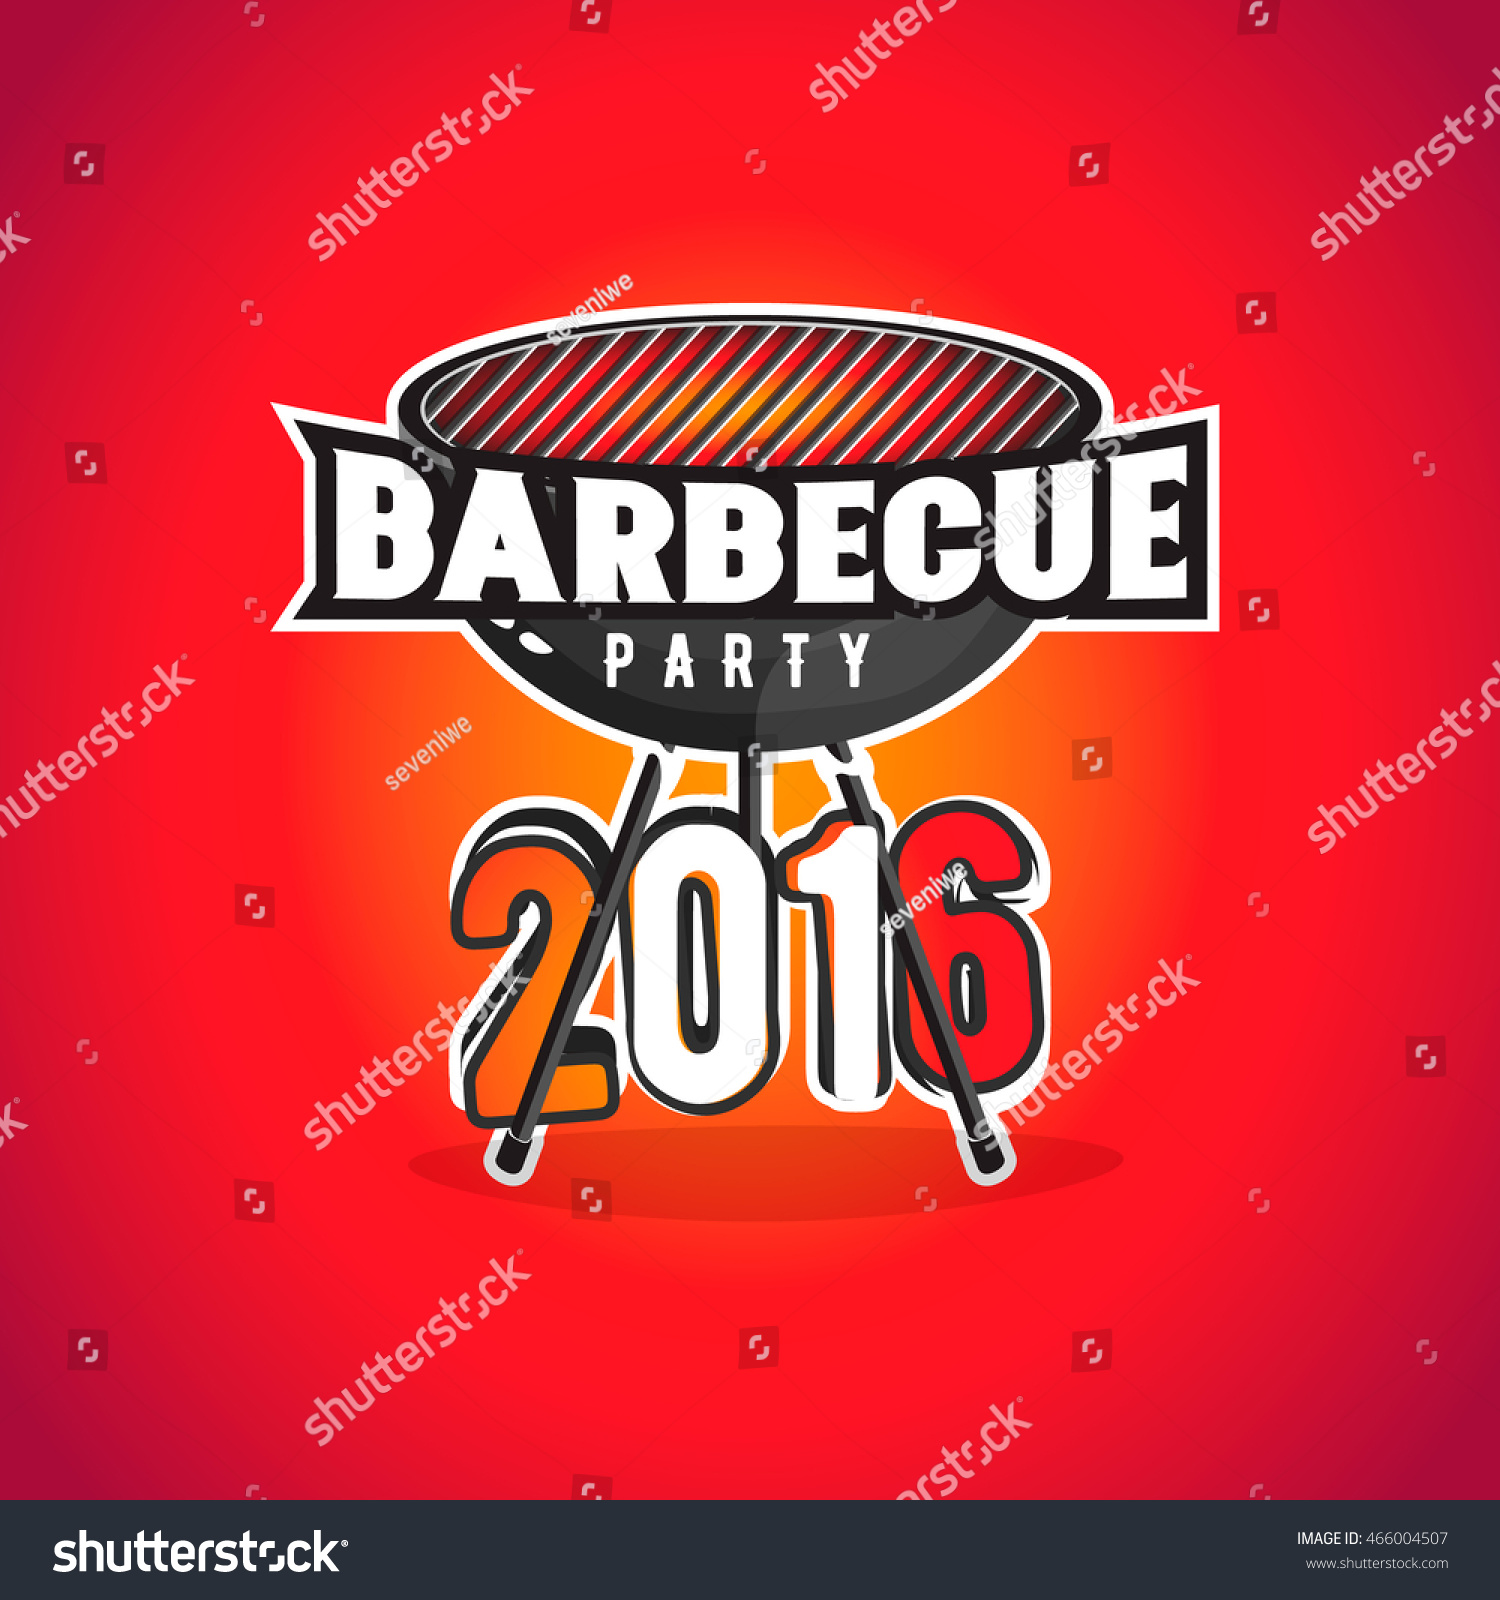 barbecue party poster flyer bbq party のベクター画像素材